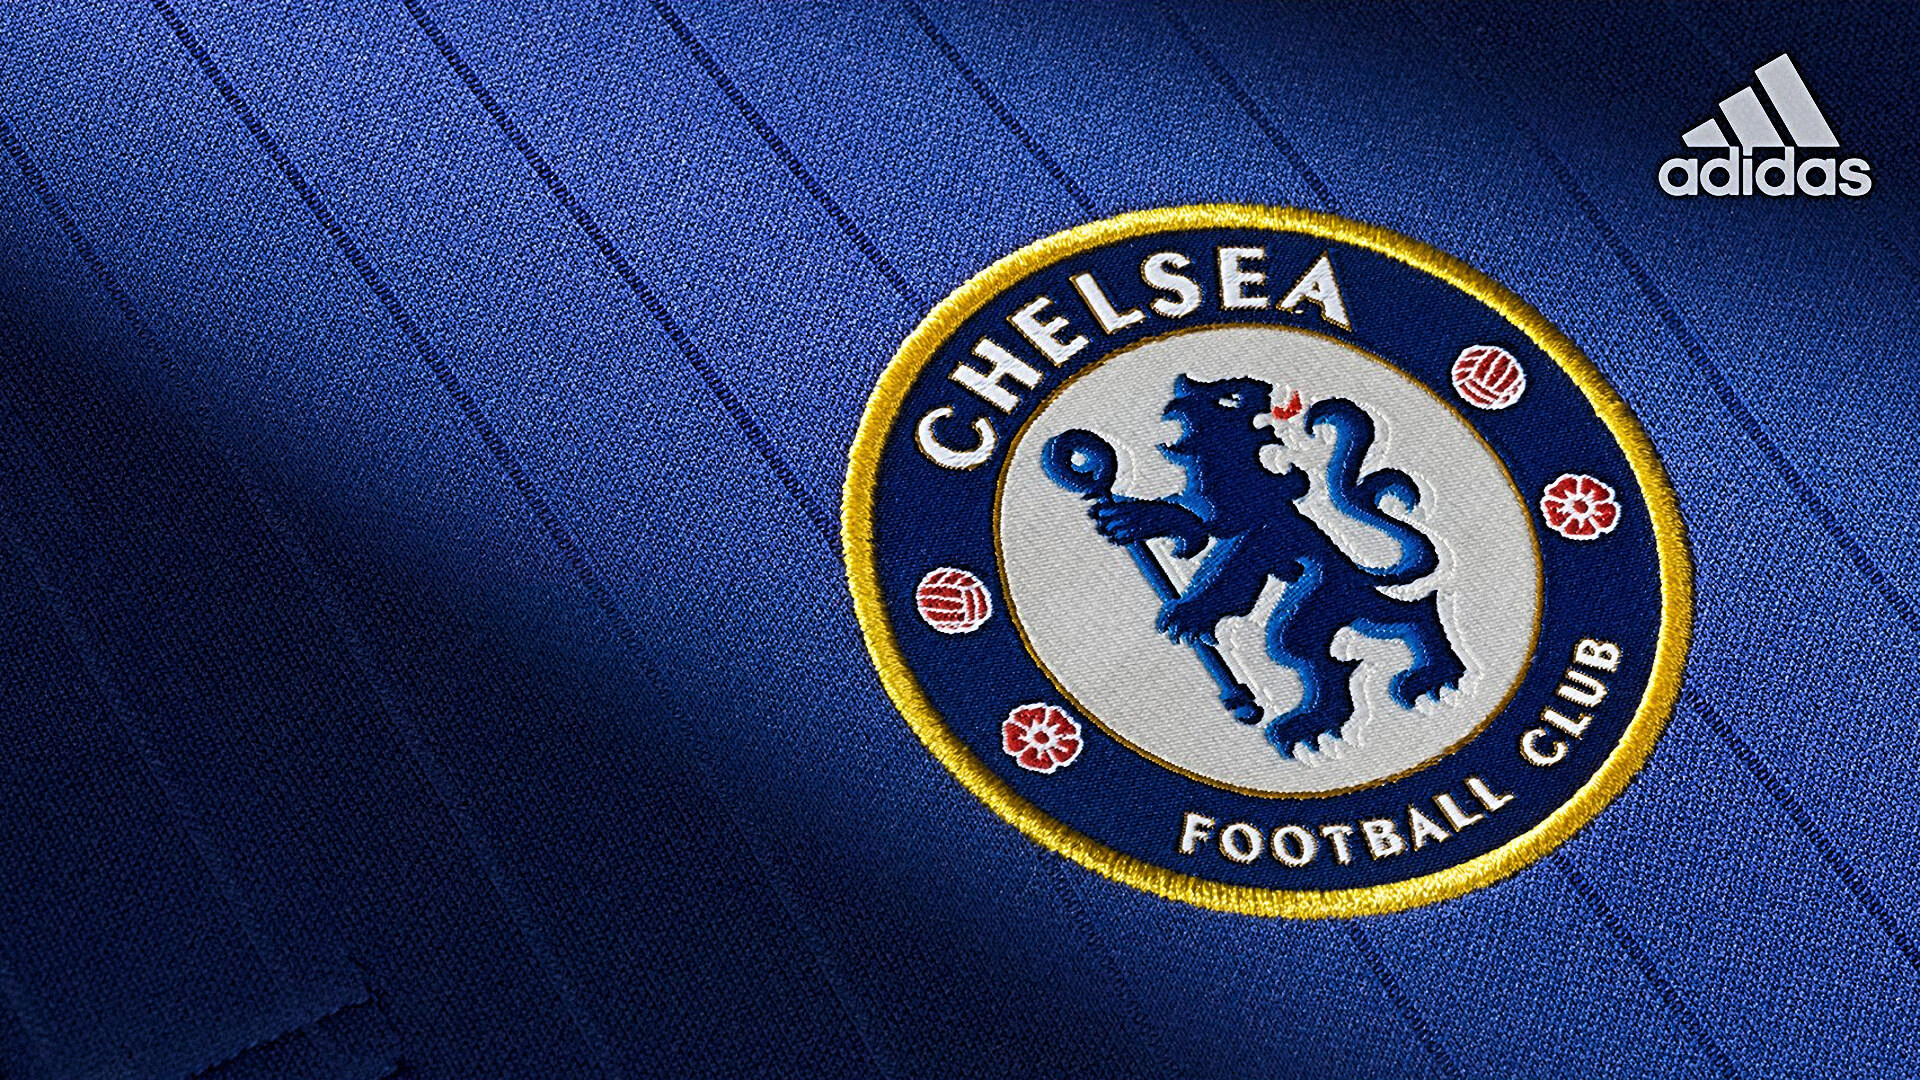 1920x1080 Chelsea Football Club 2015-2016 Adidas Jersey Badge HD Wallpaper